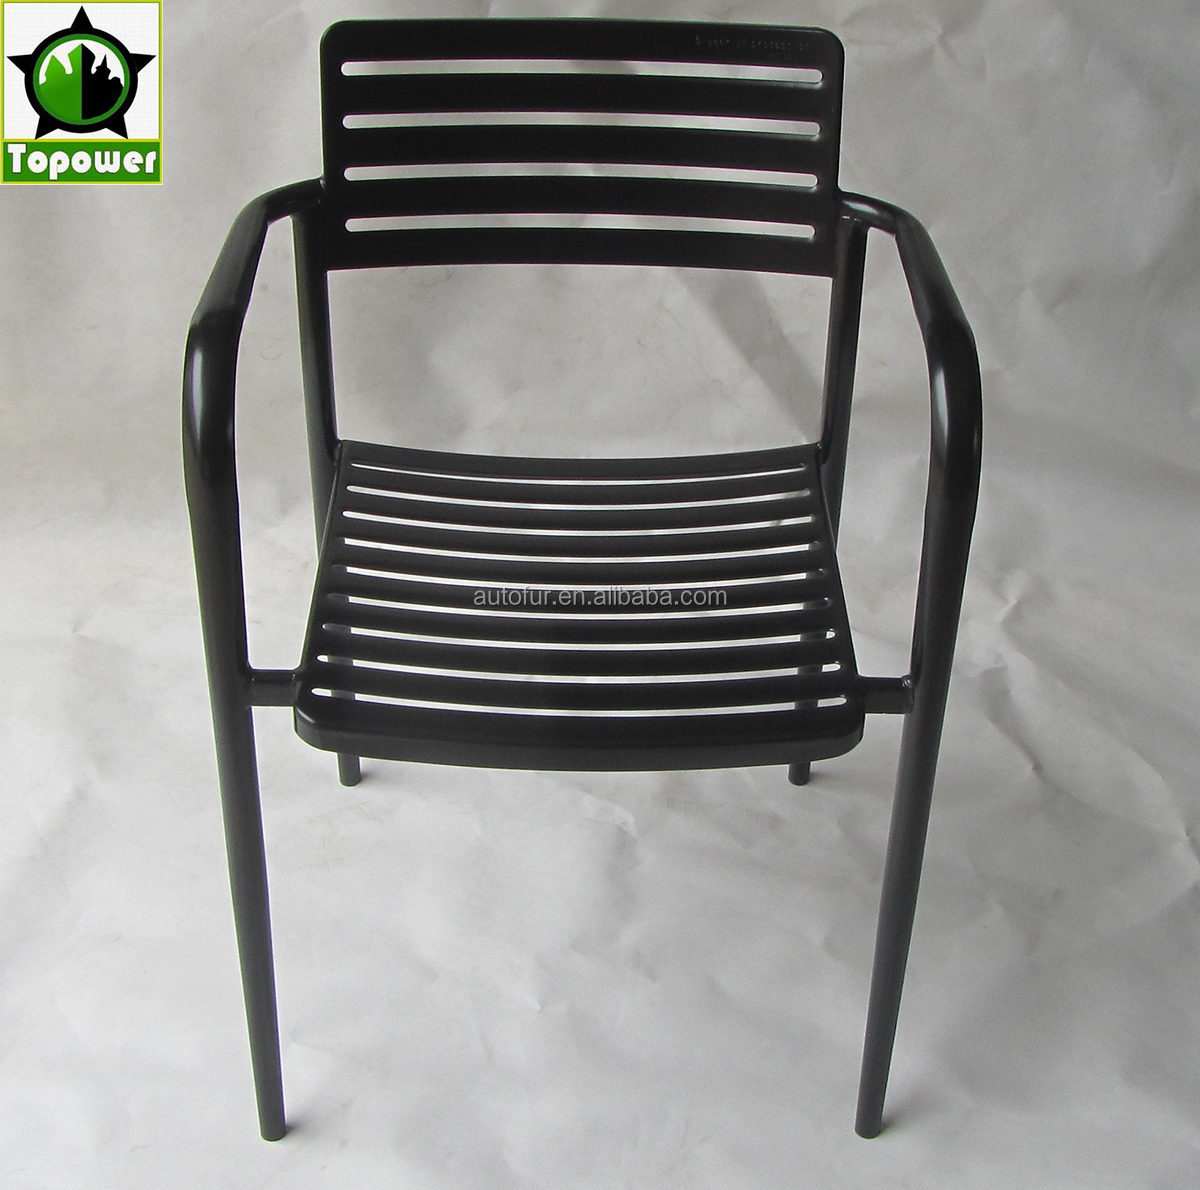 Commercial Quality Outdoor Stackable Metal Chair outdoor garden chair